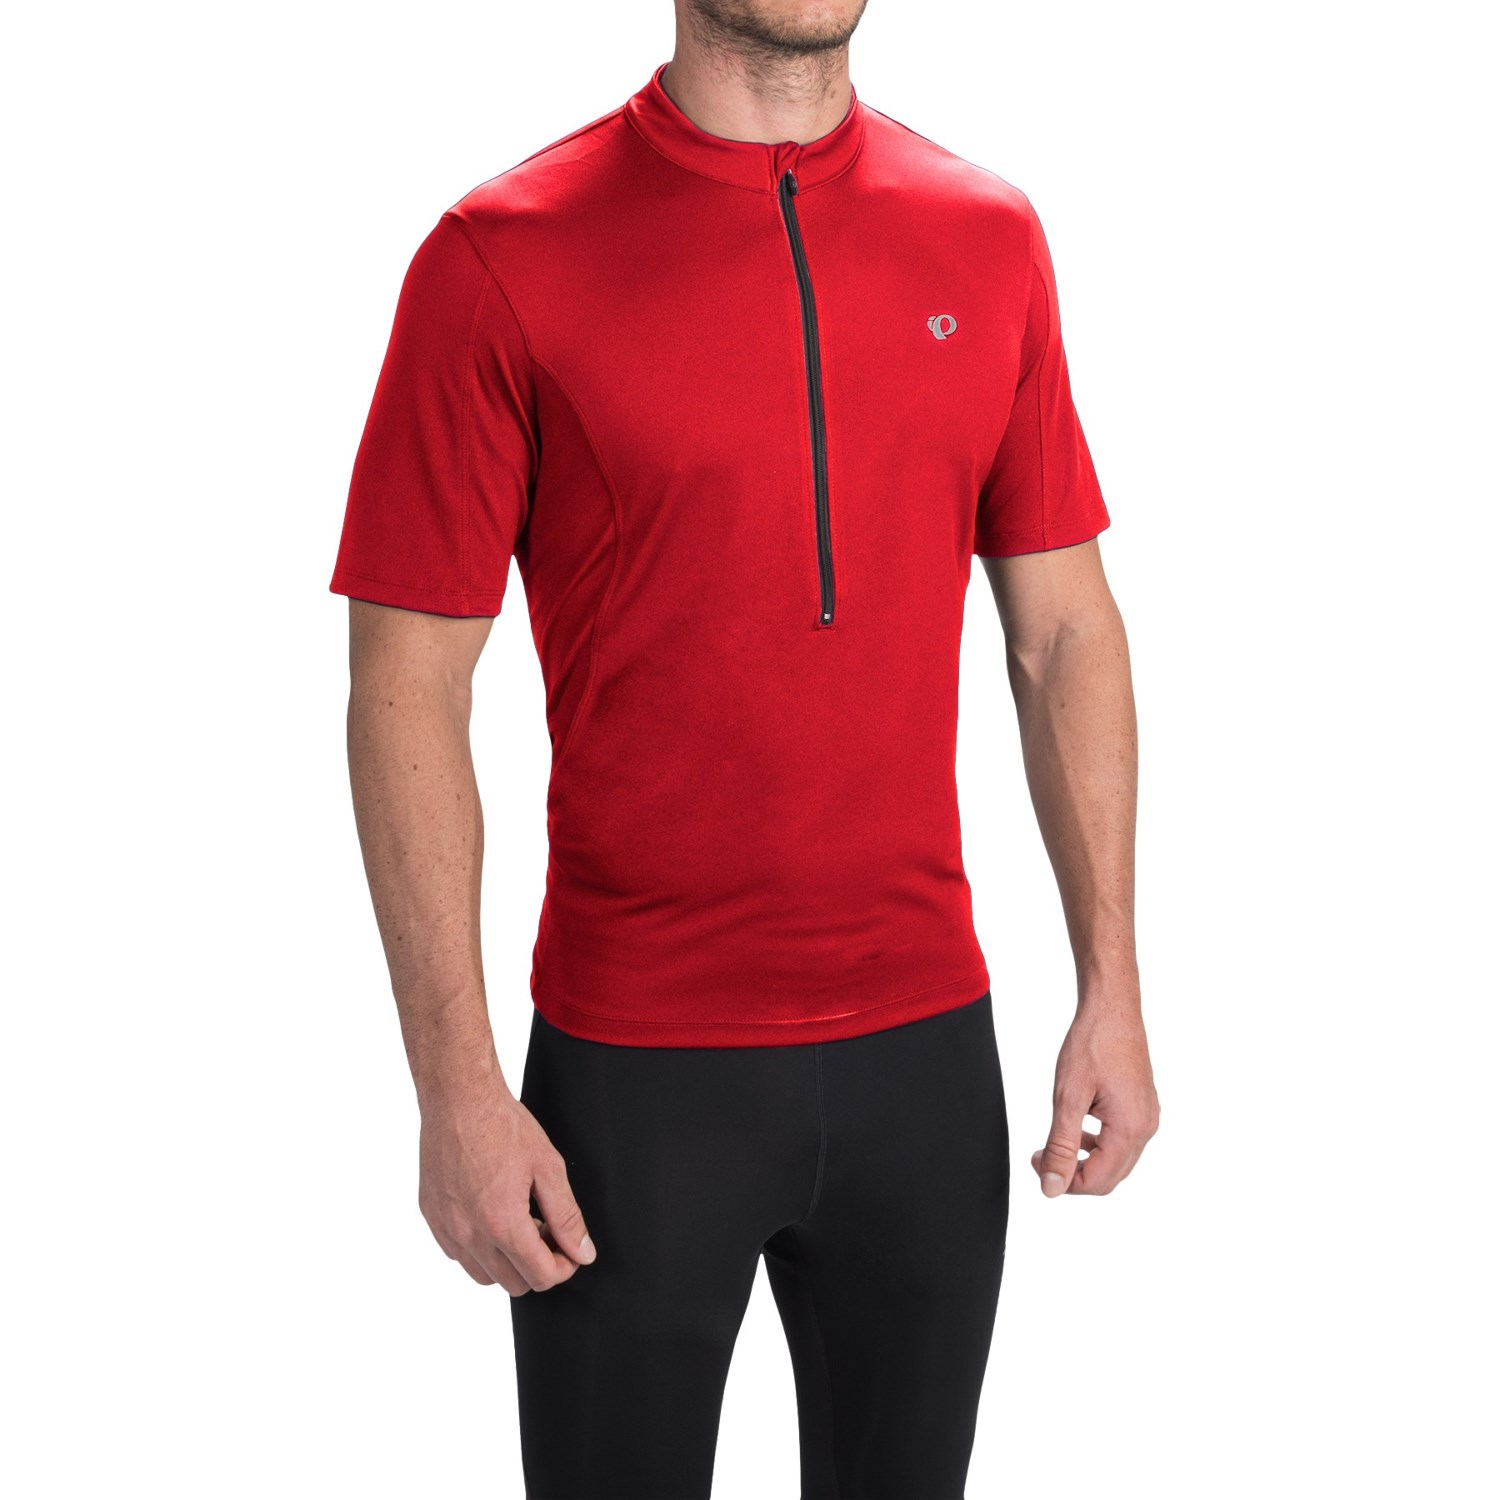 Pearl izumi select tour cycling jersey for men save 58 for Pearl izumi cycling shirt